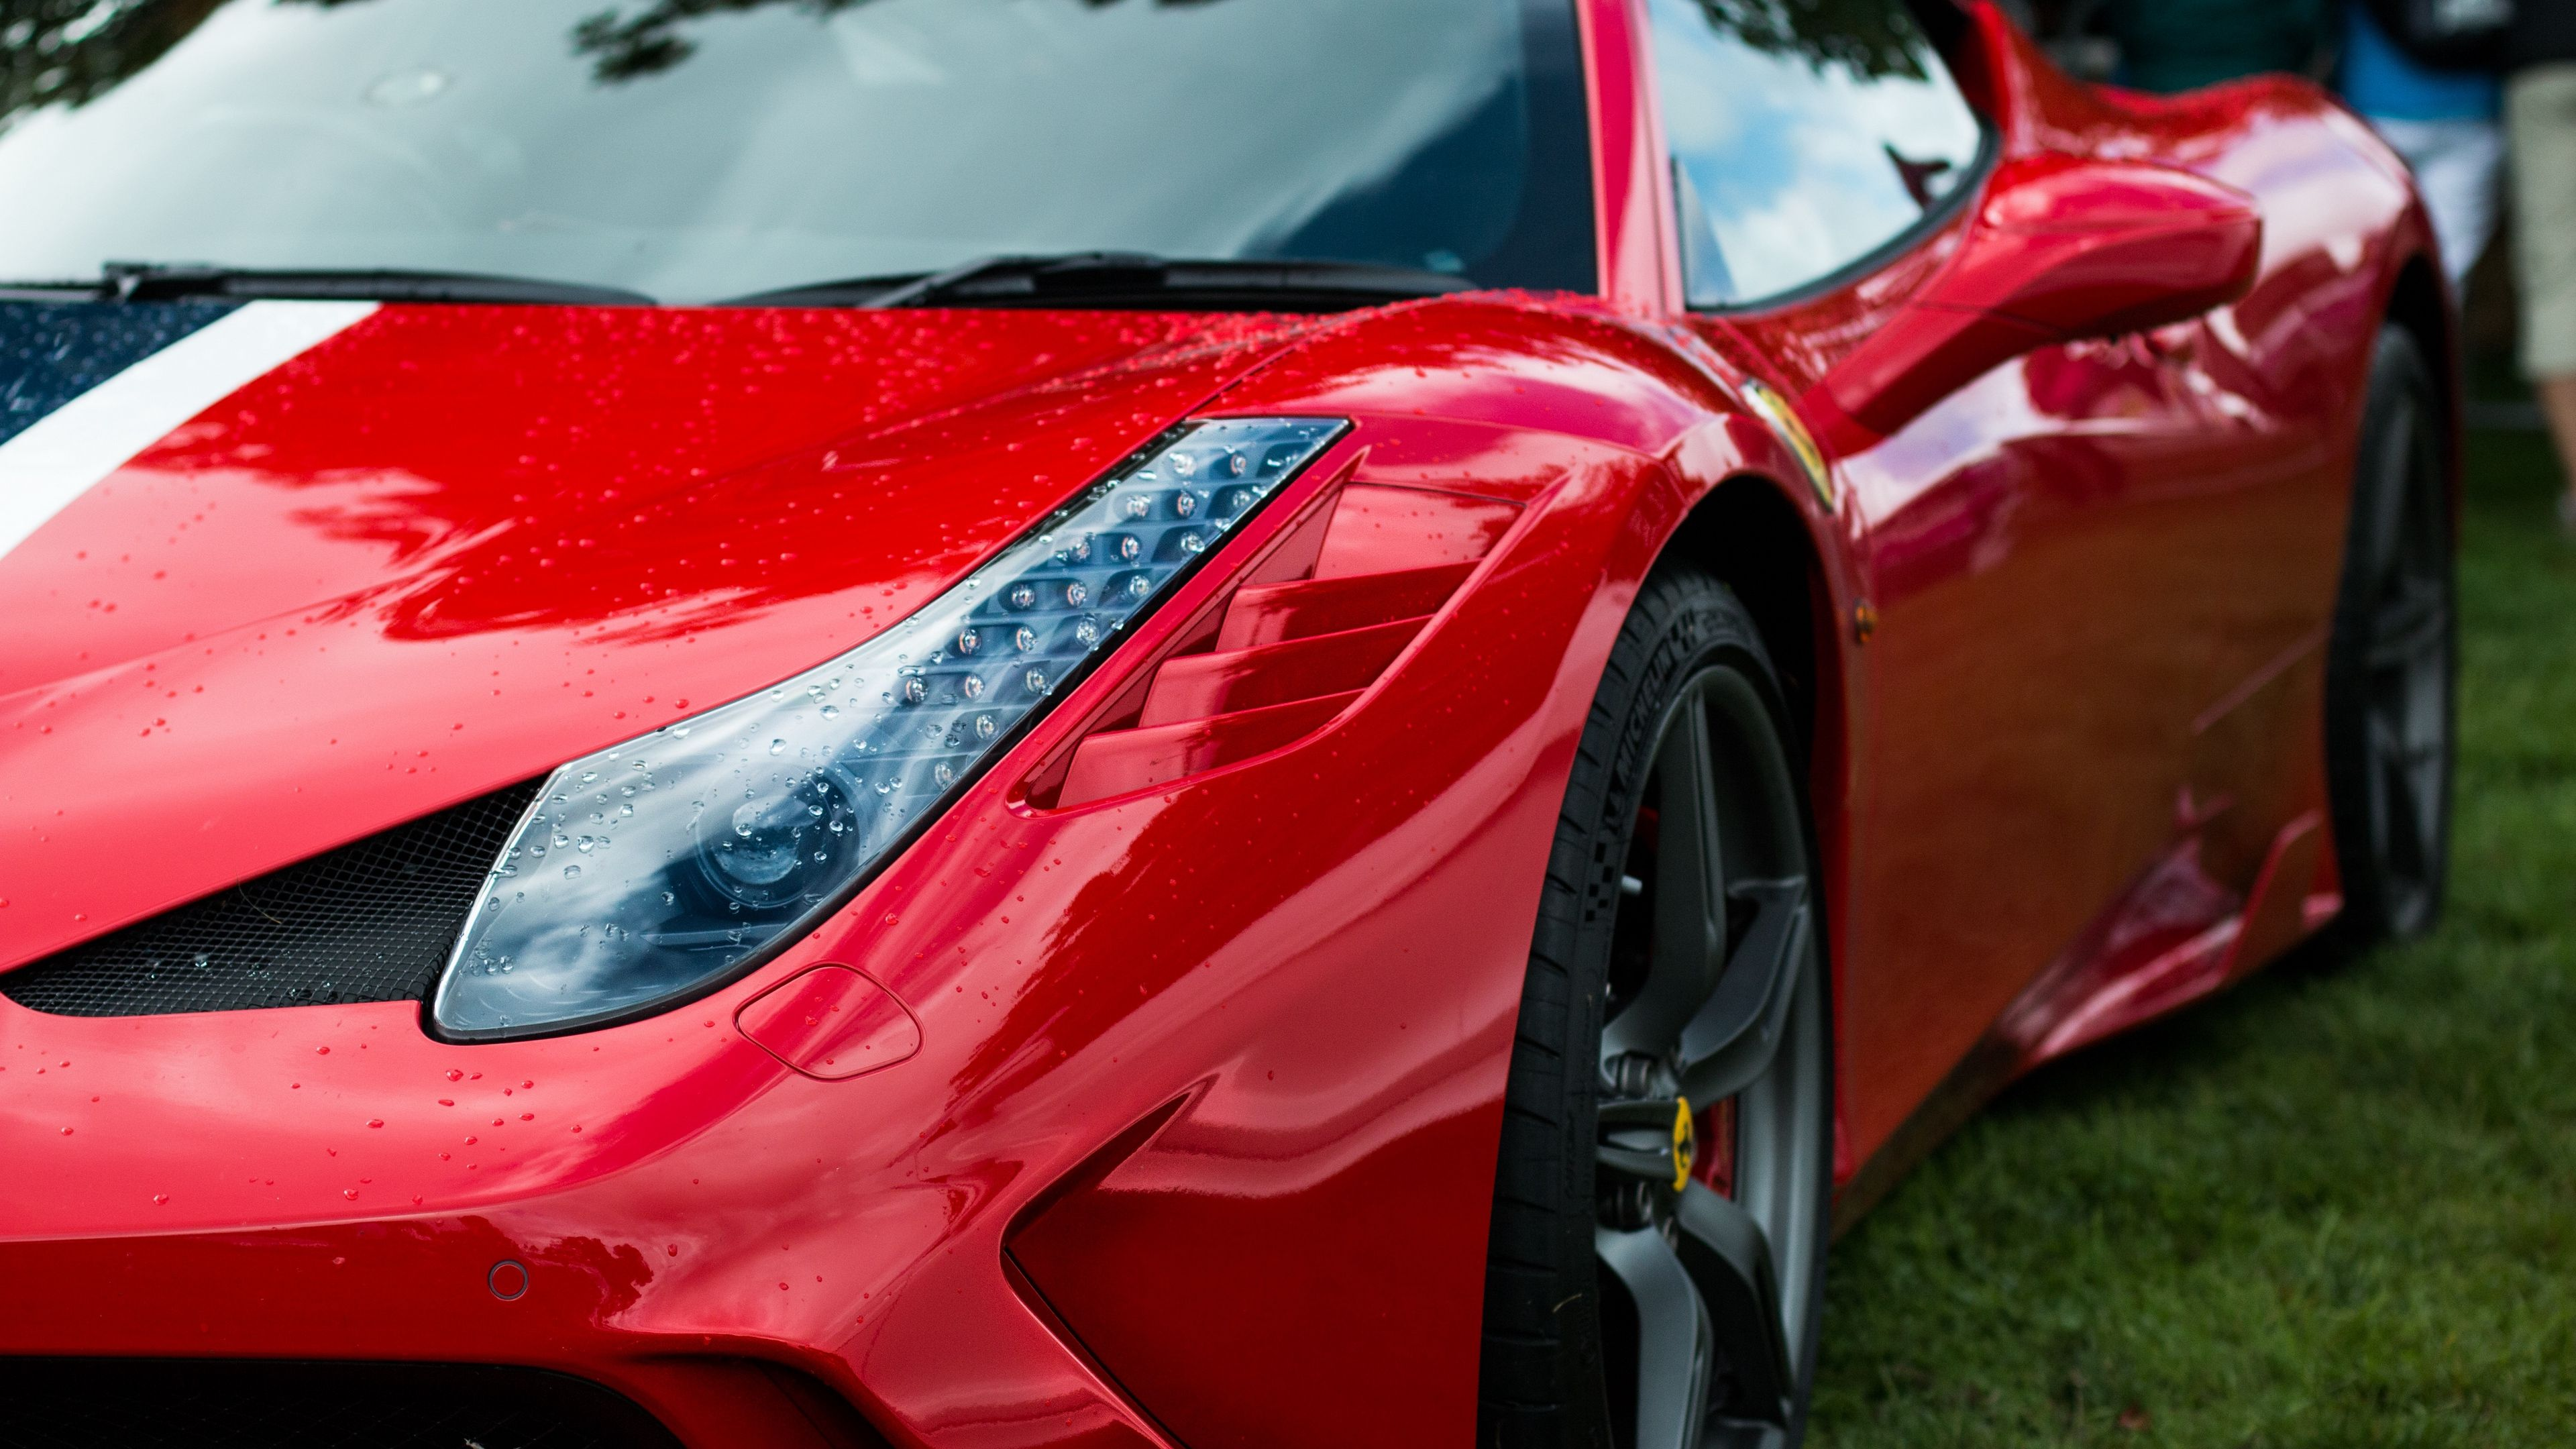 Ferrari 458 Speciale Ferrari Sports Car Supercar Red Headlight Wheel 4k Sports Car Ferrari 458 Speciale Fer Ferrari 458 Super Cars Ferrari 458 Speciale